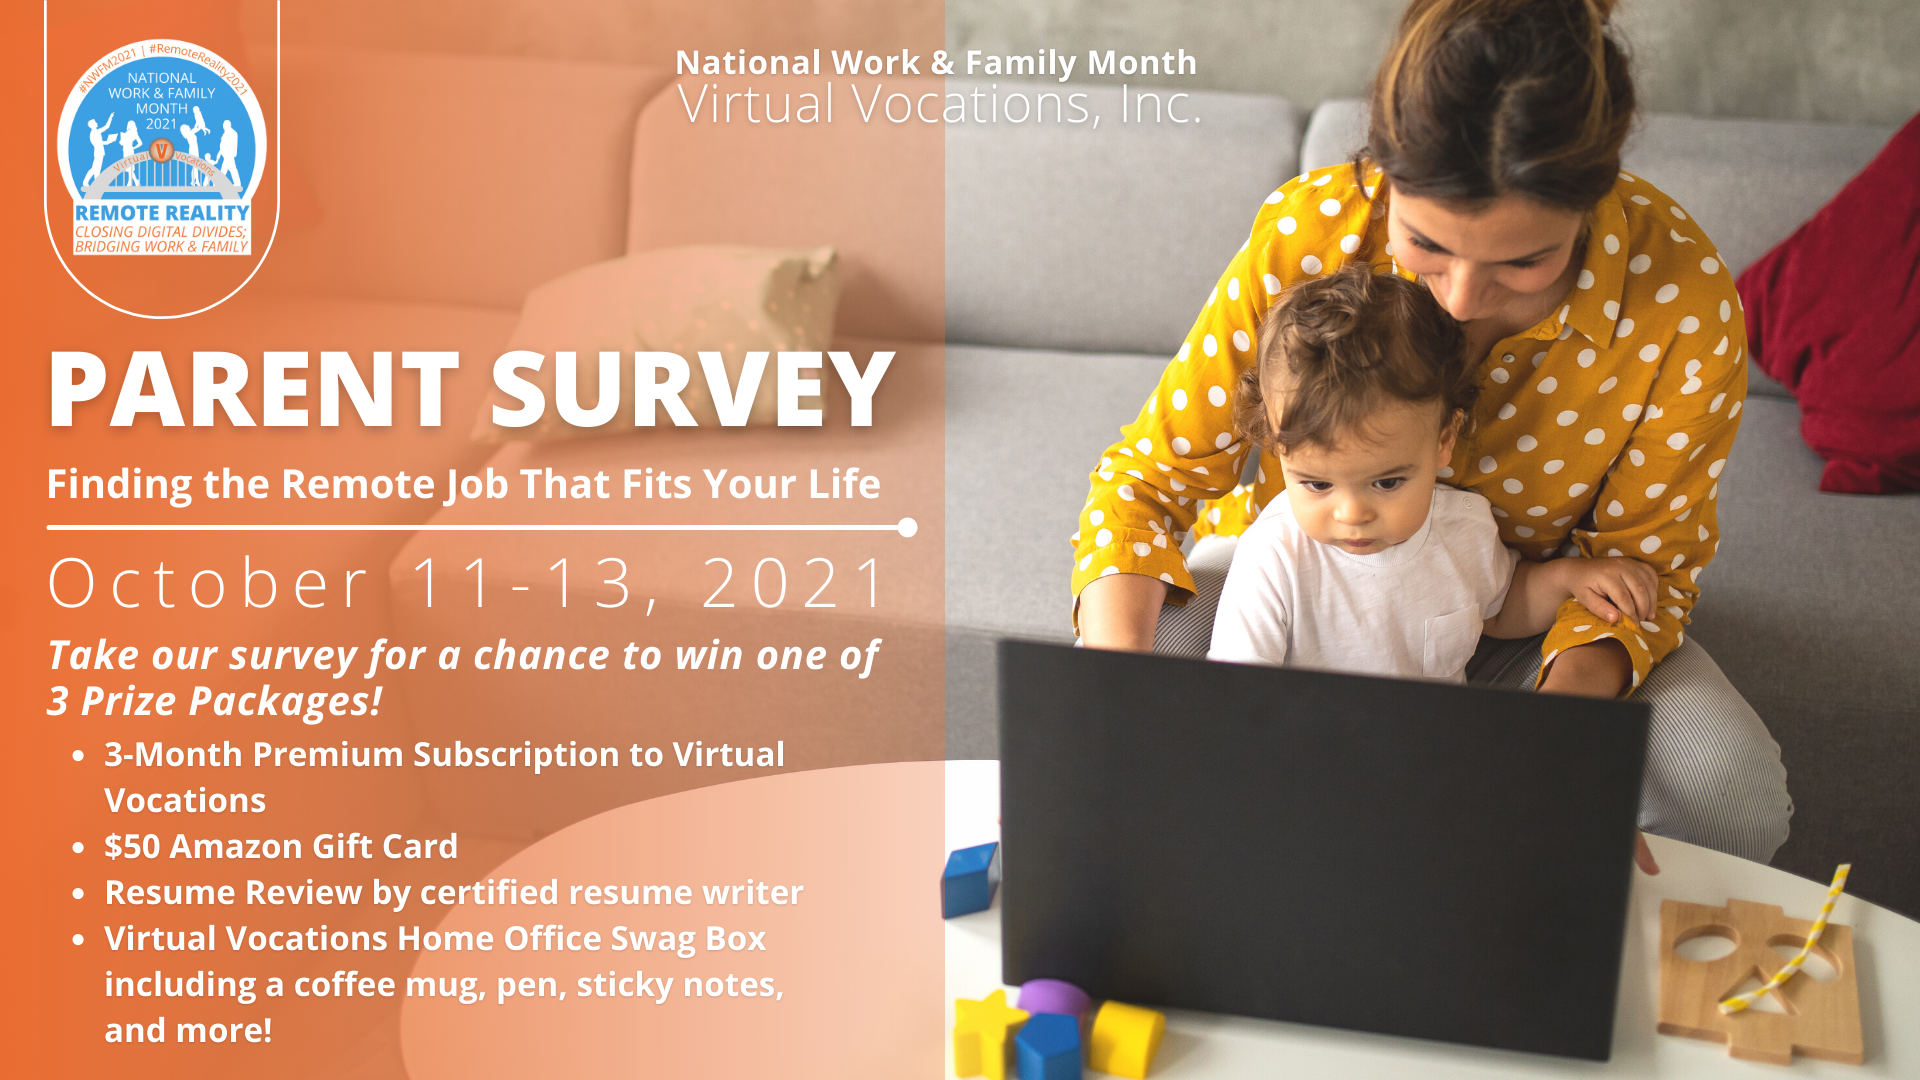 National Work and Family Month 2021 Parent Survey Virtual Vocations